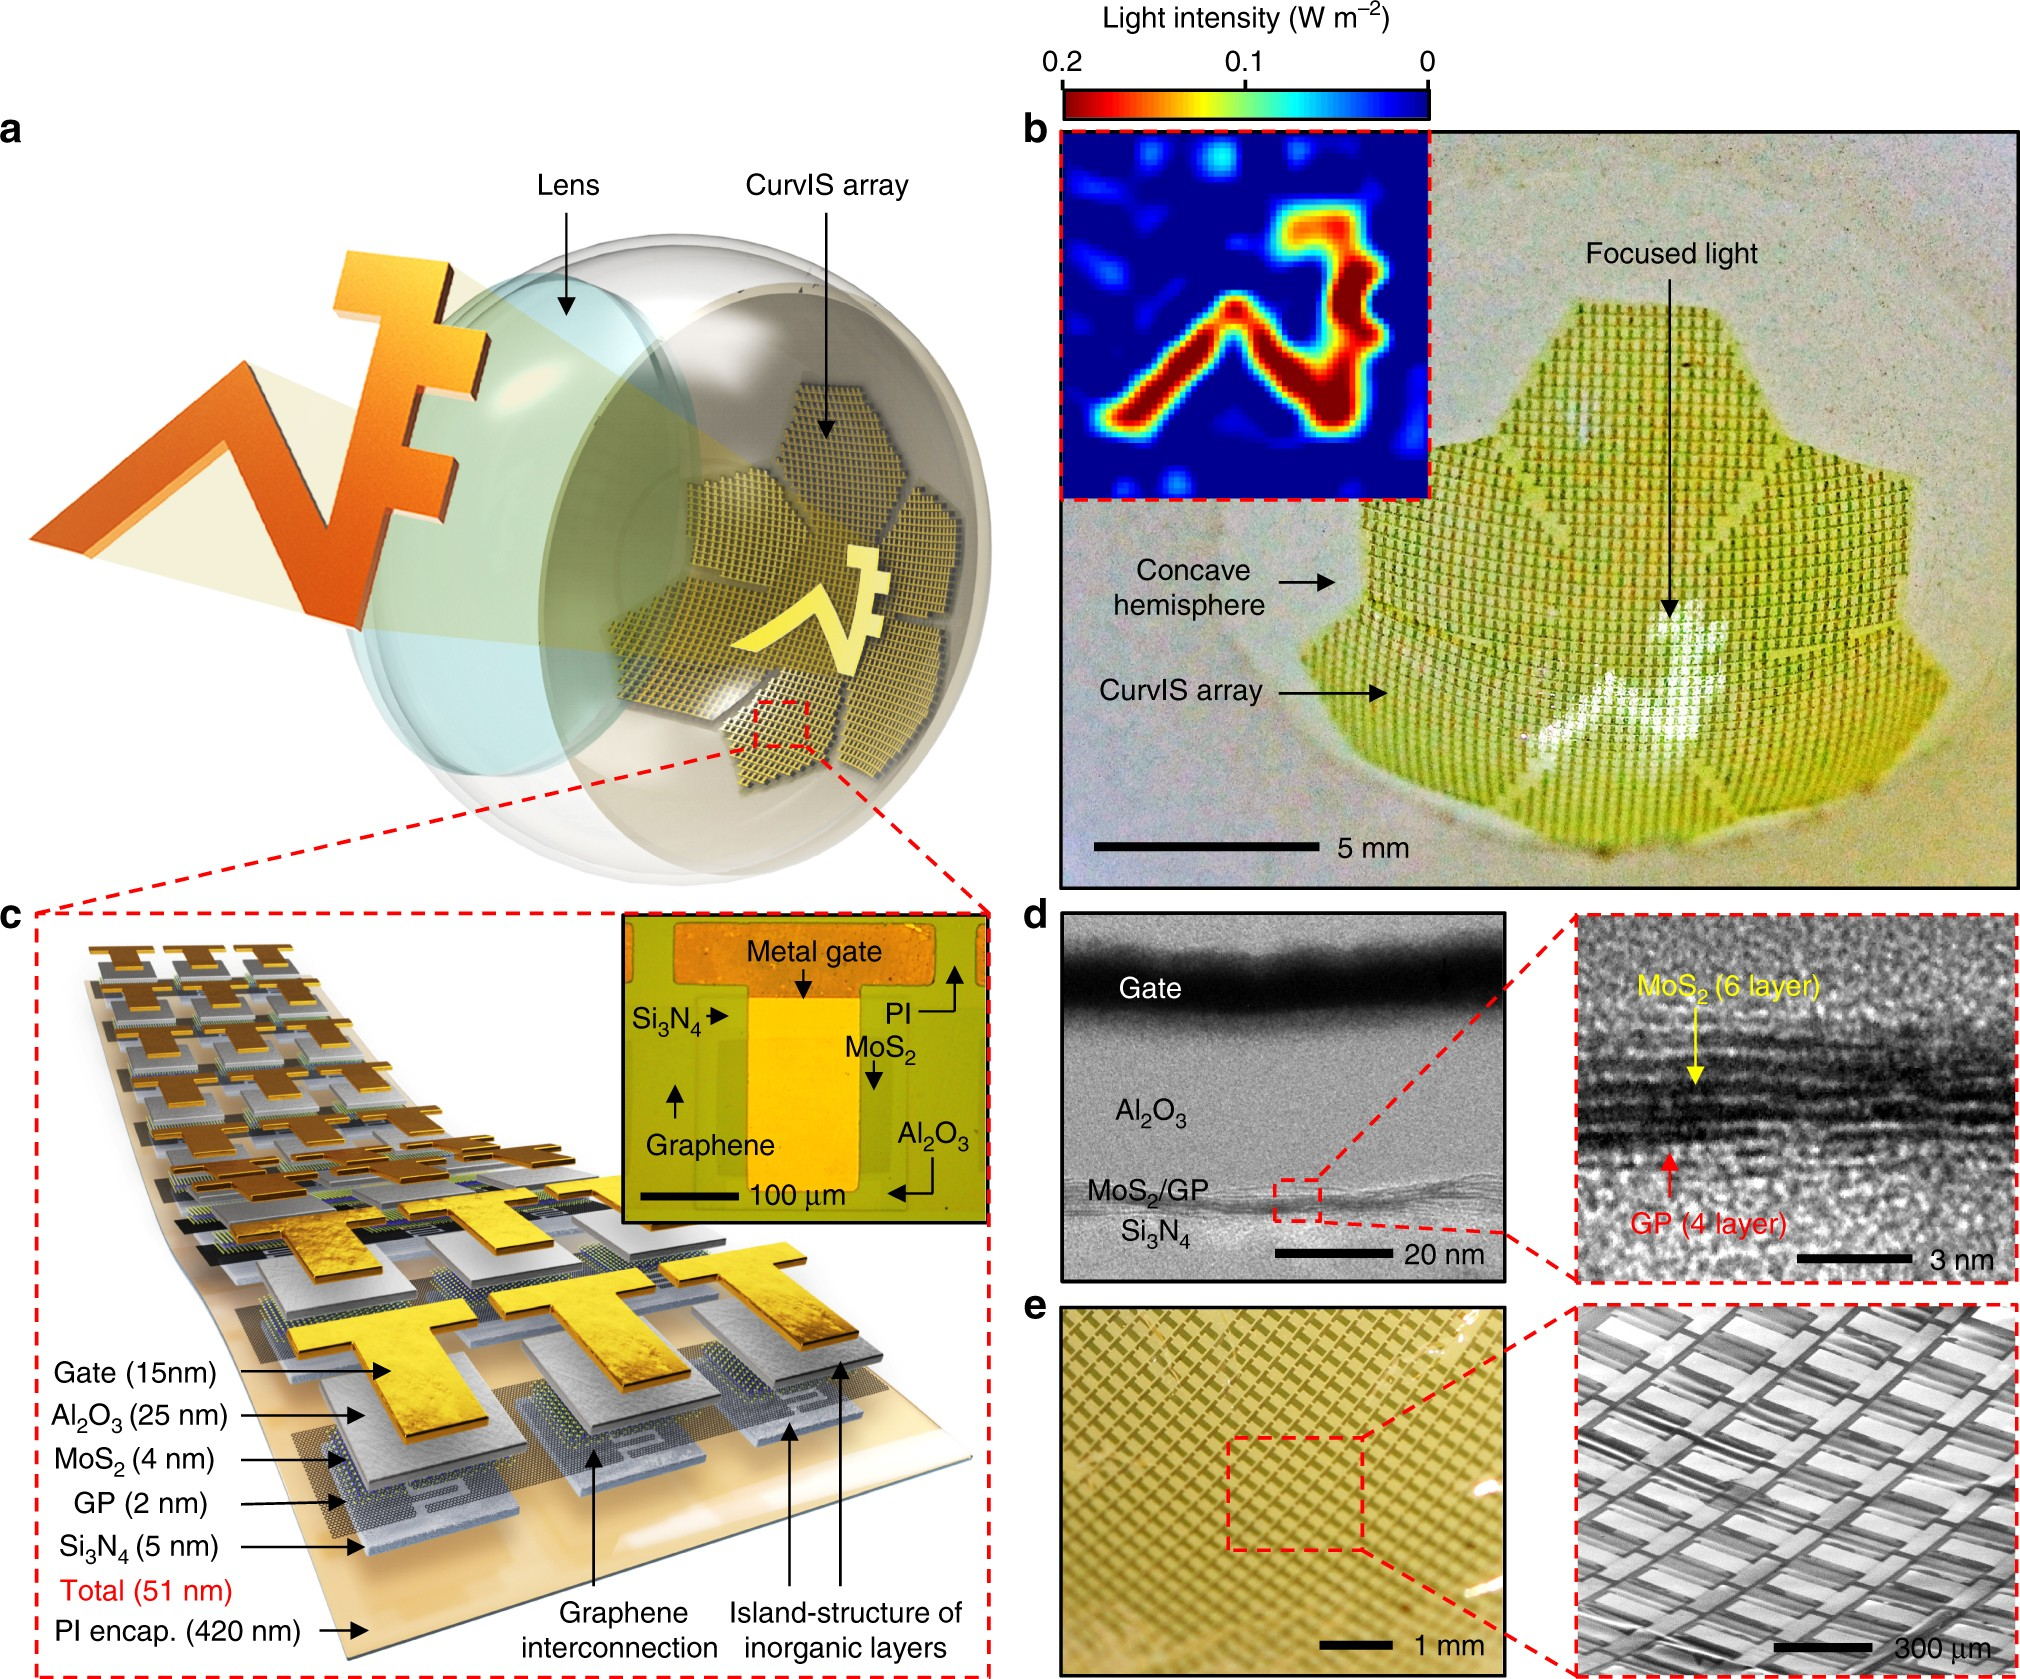 Human Eye Inspired Soft Optoelectronic Device Using High Density Mos Diagramoftheeye23 Diagram Picture 2 Graphene Curved Image Sensor Array Nature Communications